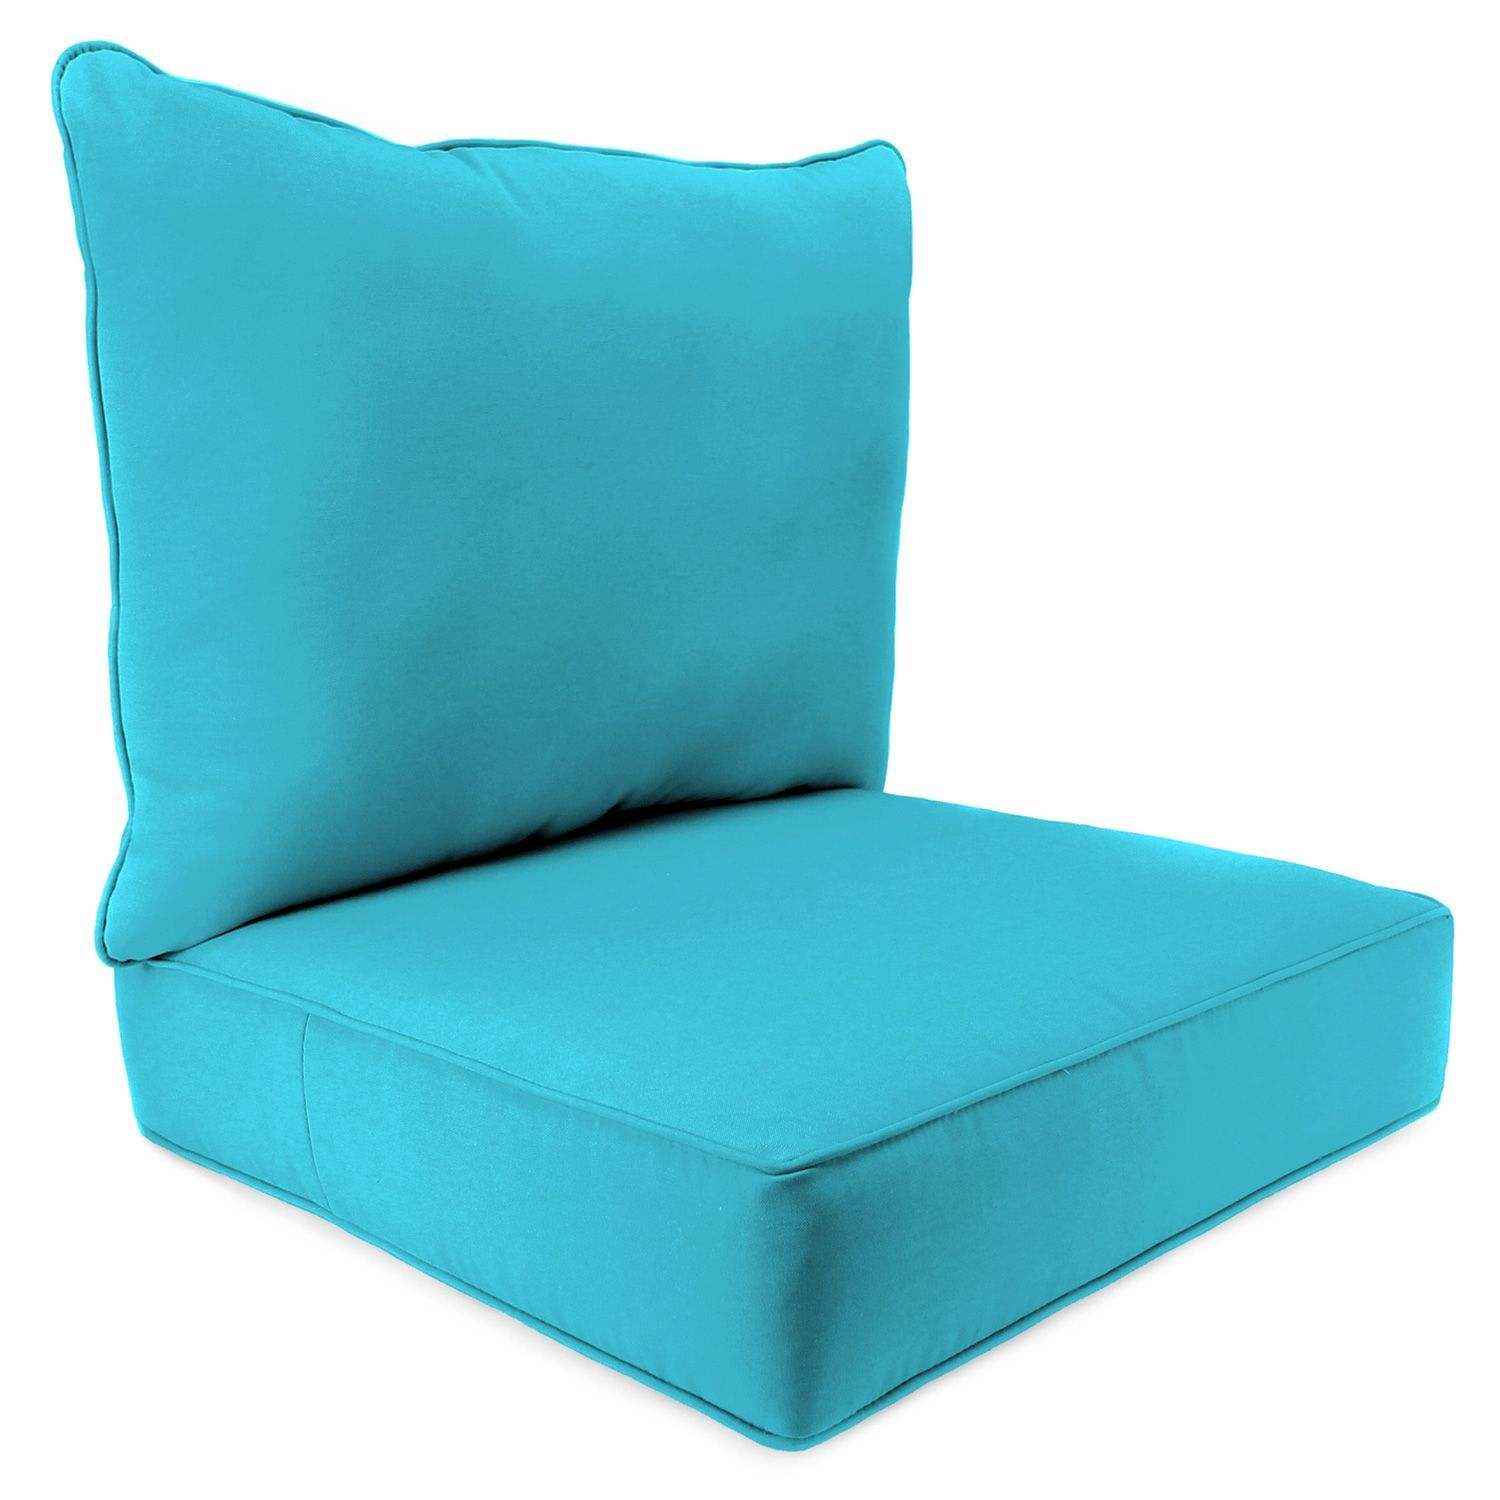 2 Piece Deep Seating Chair Cushion Various Colors